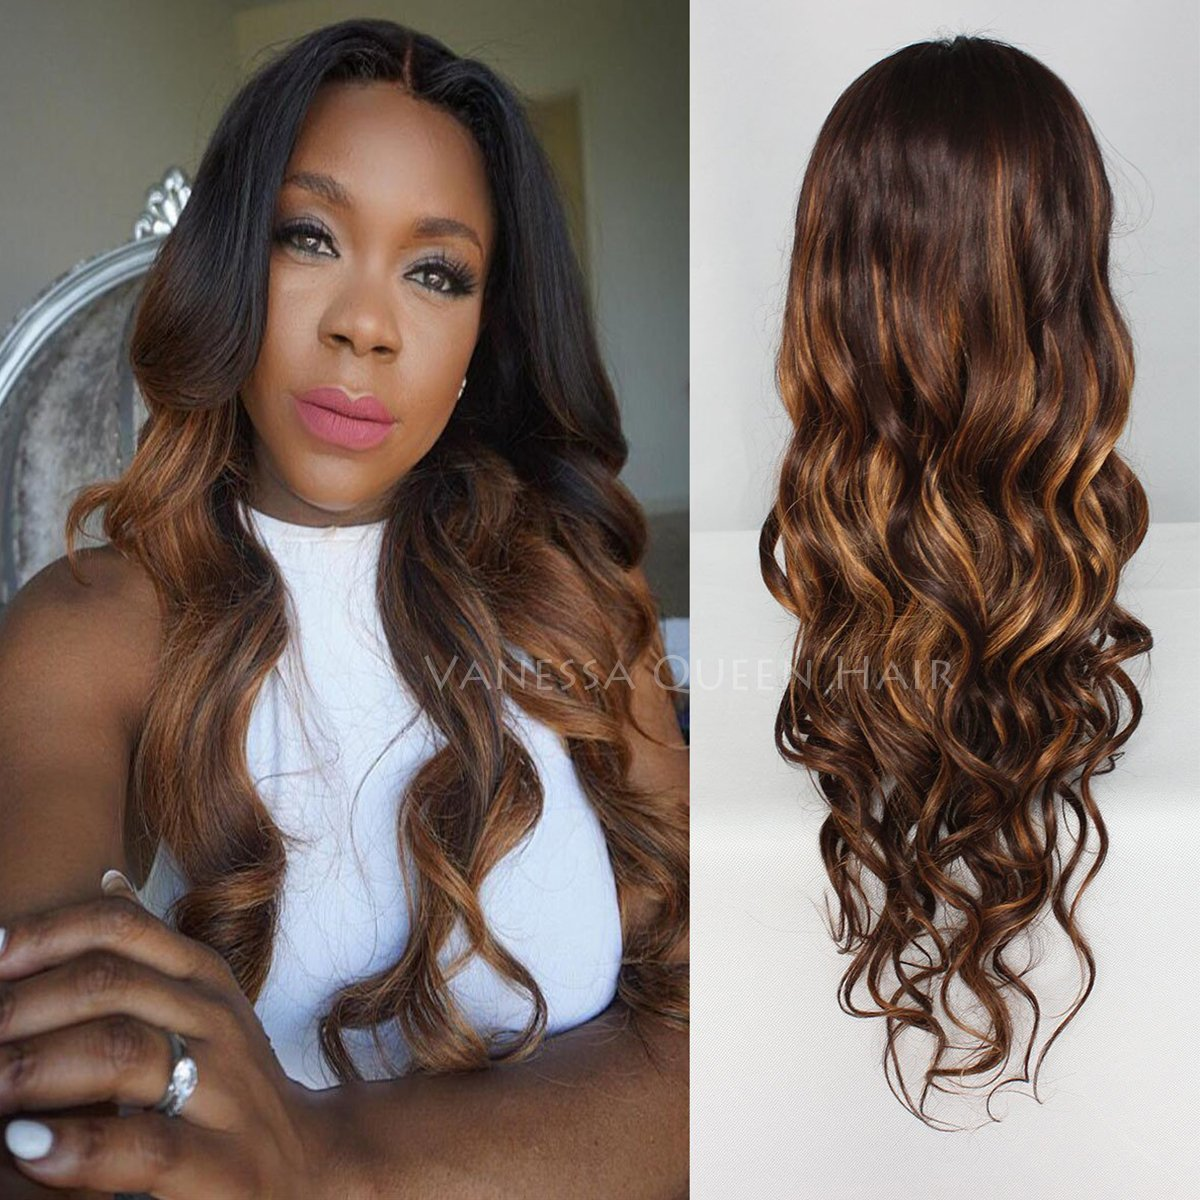 Vanessa Queen Brown Hair Full Lace Wigs Two Tone Color Wavy Lace Front Human Hair Wigs Ombre Hair Wigs